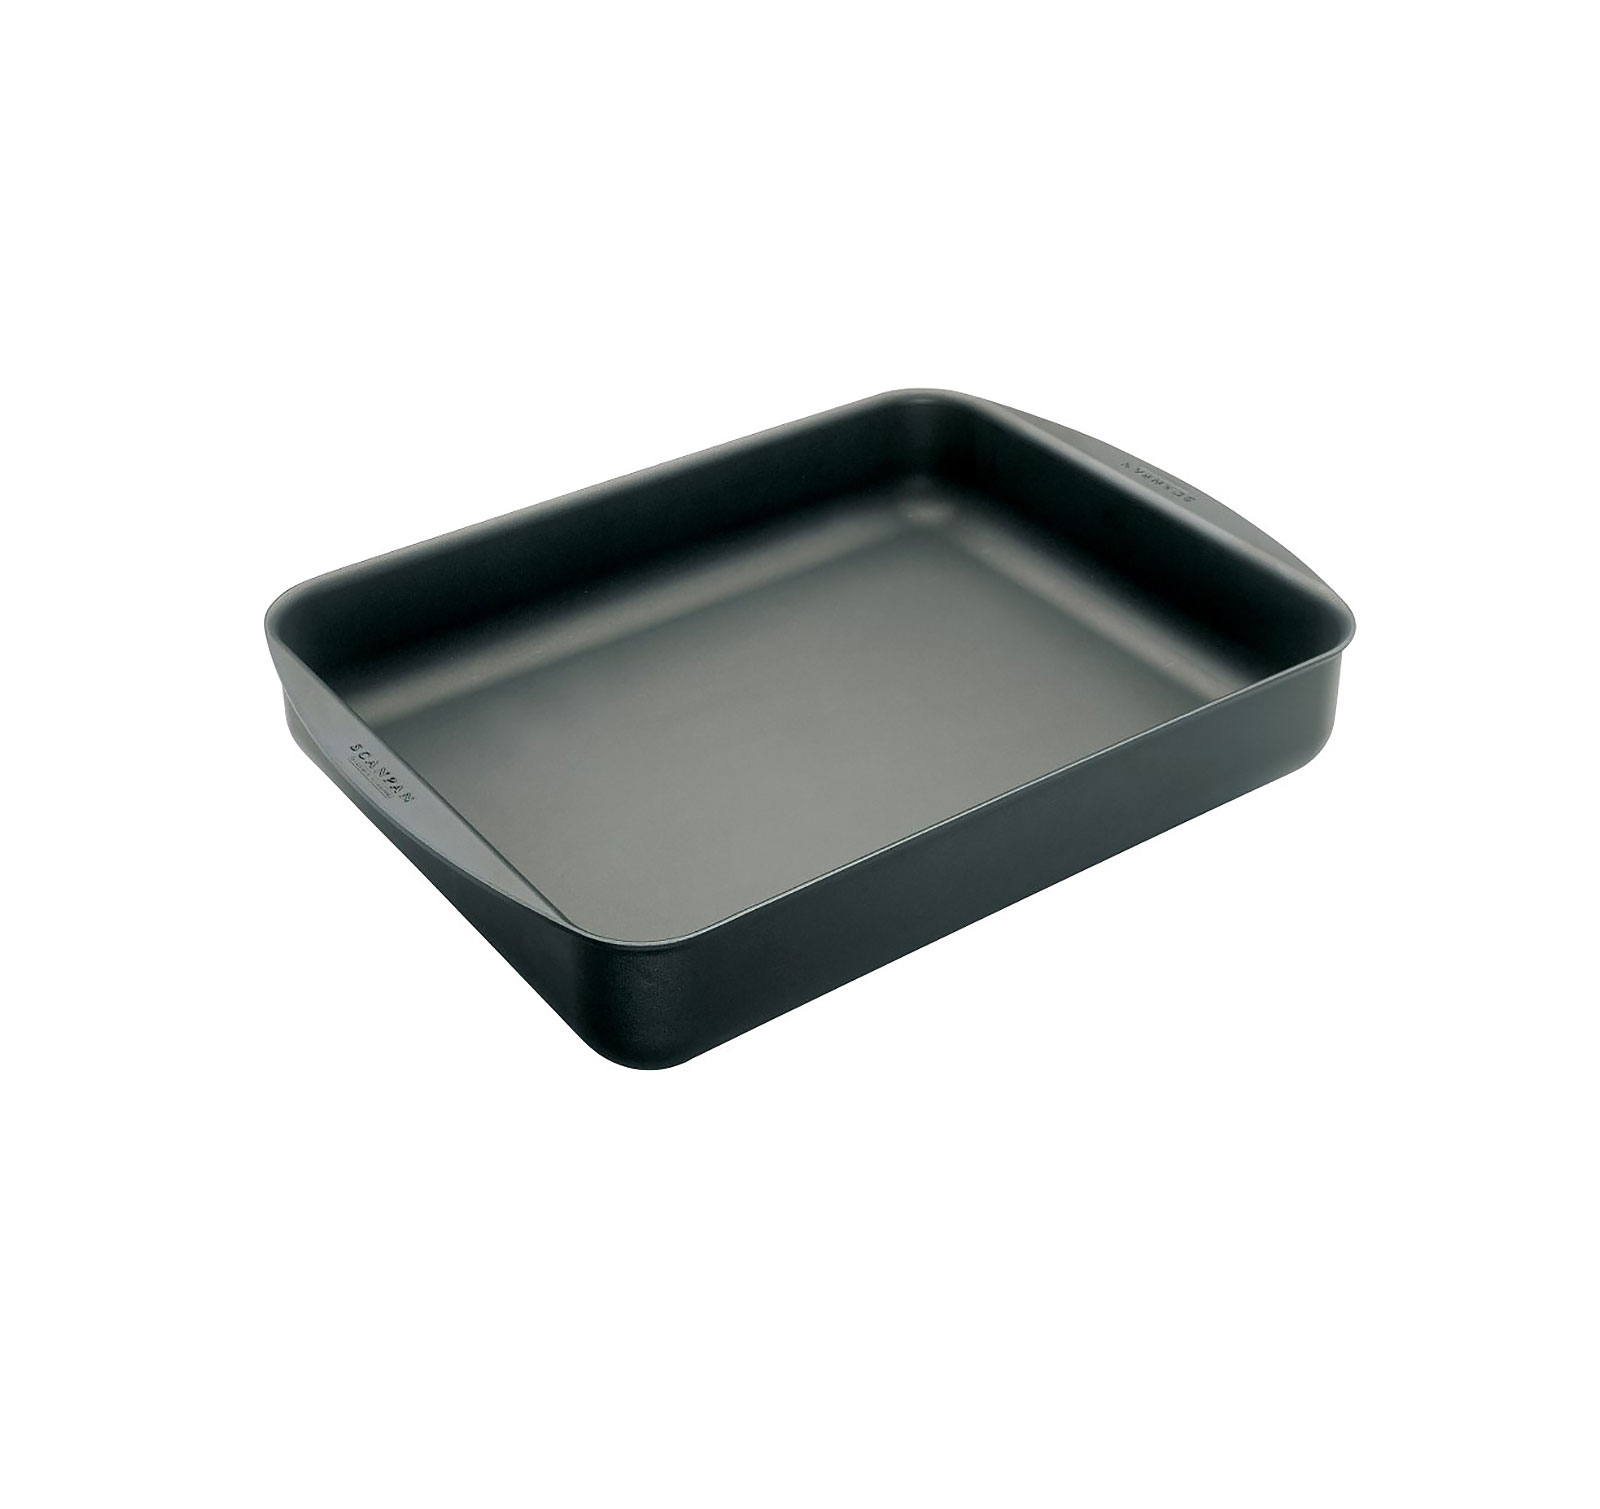 Image of the Scanpan 5 1/4 Quart CLASSIC Roasting Pan